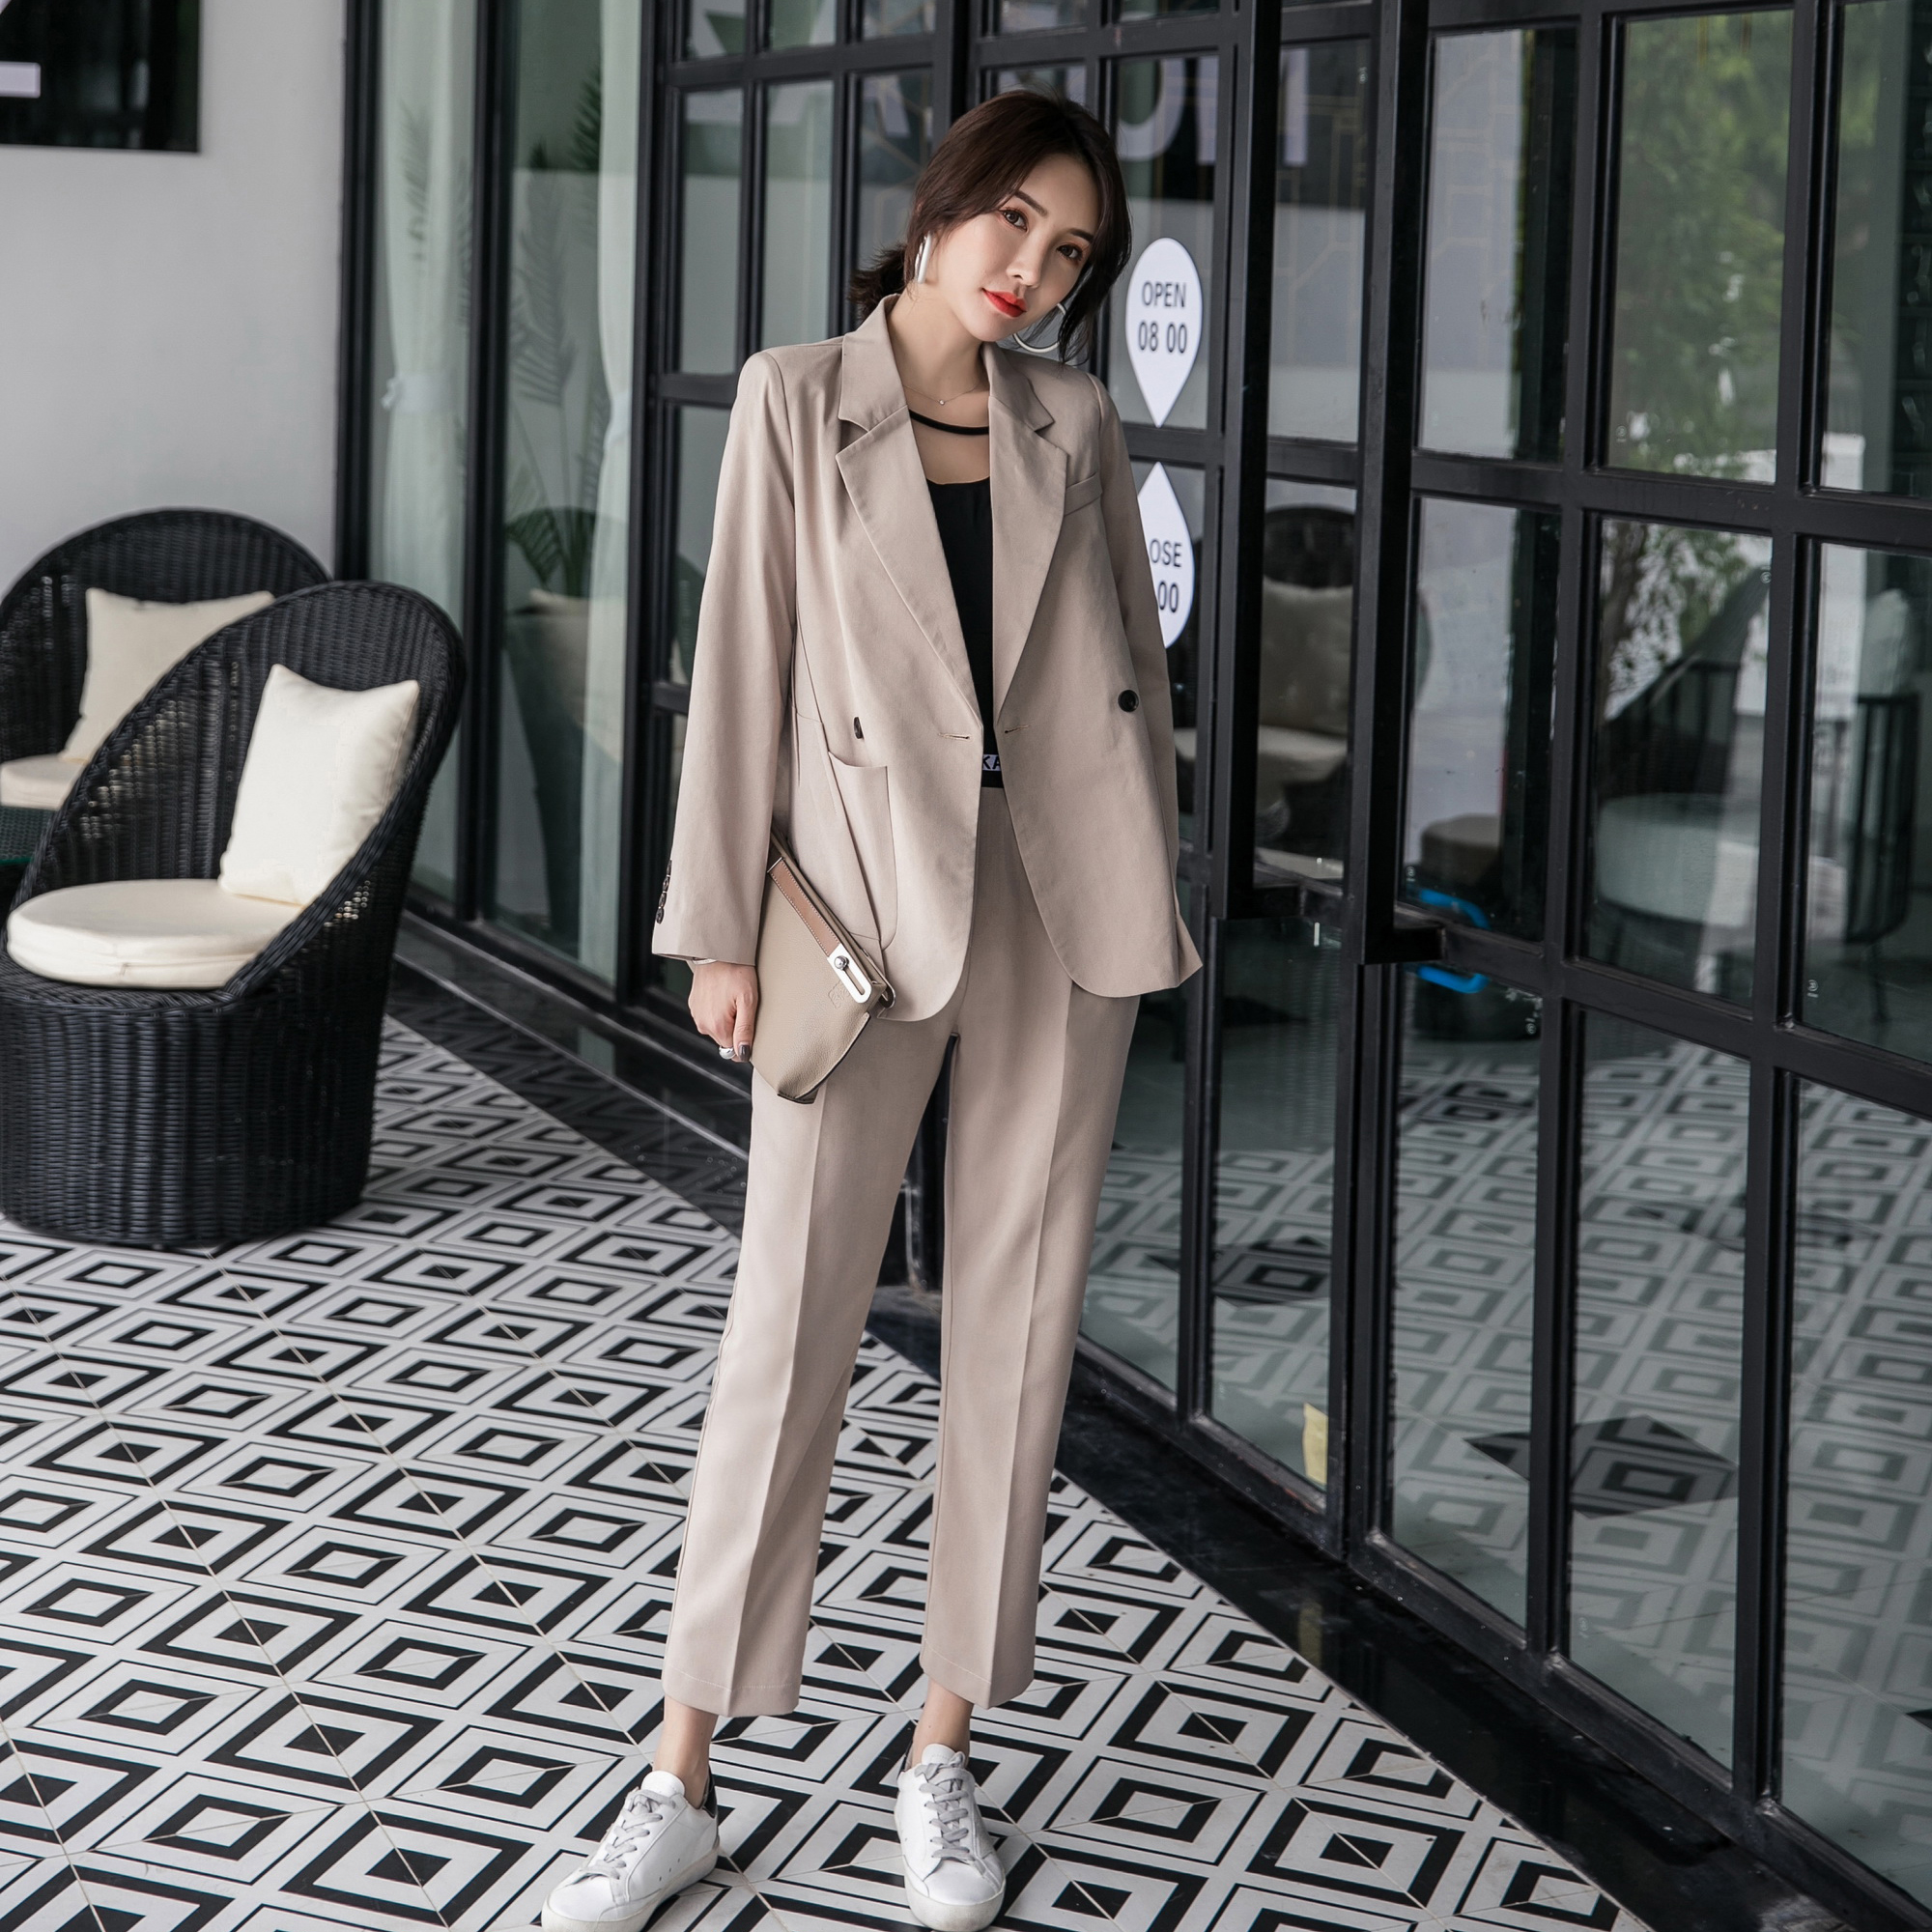 New Arrival Women Notched Patchwork Blazer Elastic Waist Long Harem Pants 2 Piece Set Female Casual Khaki Pants Suit S98305F